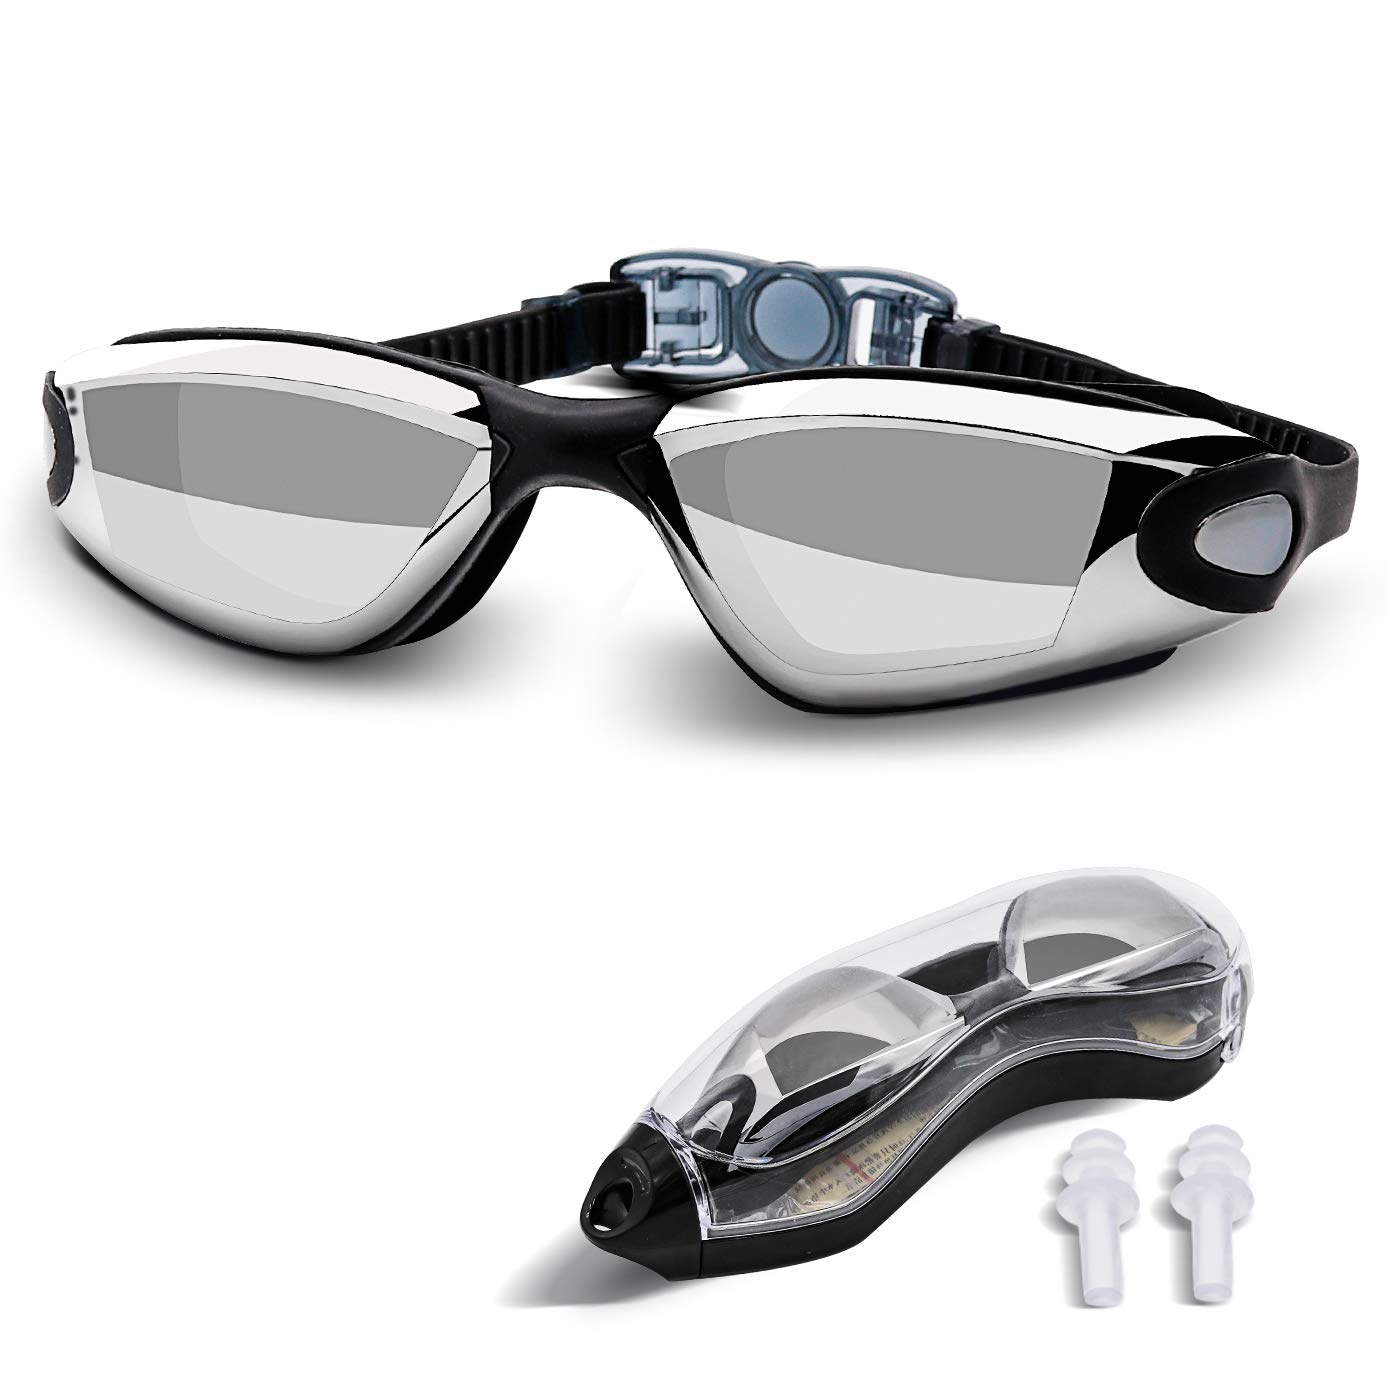 YoJetSing Swimming Goggles For Adult Men Women, Swim Goggles With Ear Plugs No Leaking Anti Fog UV Protection